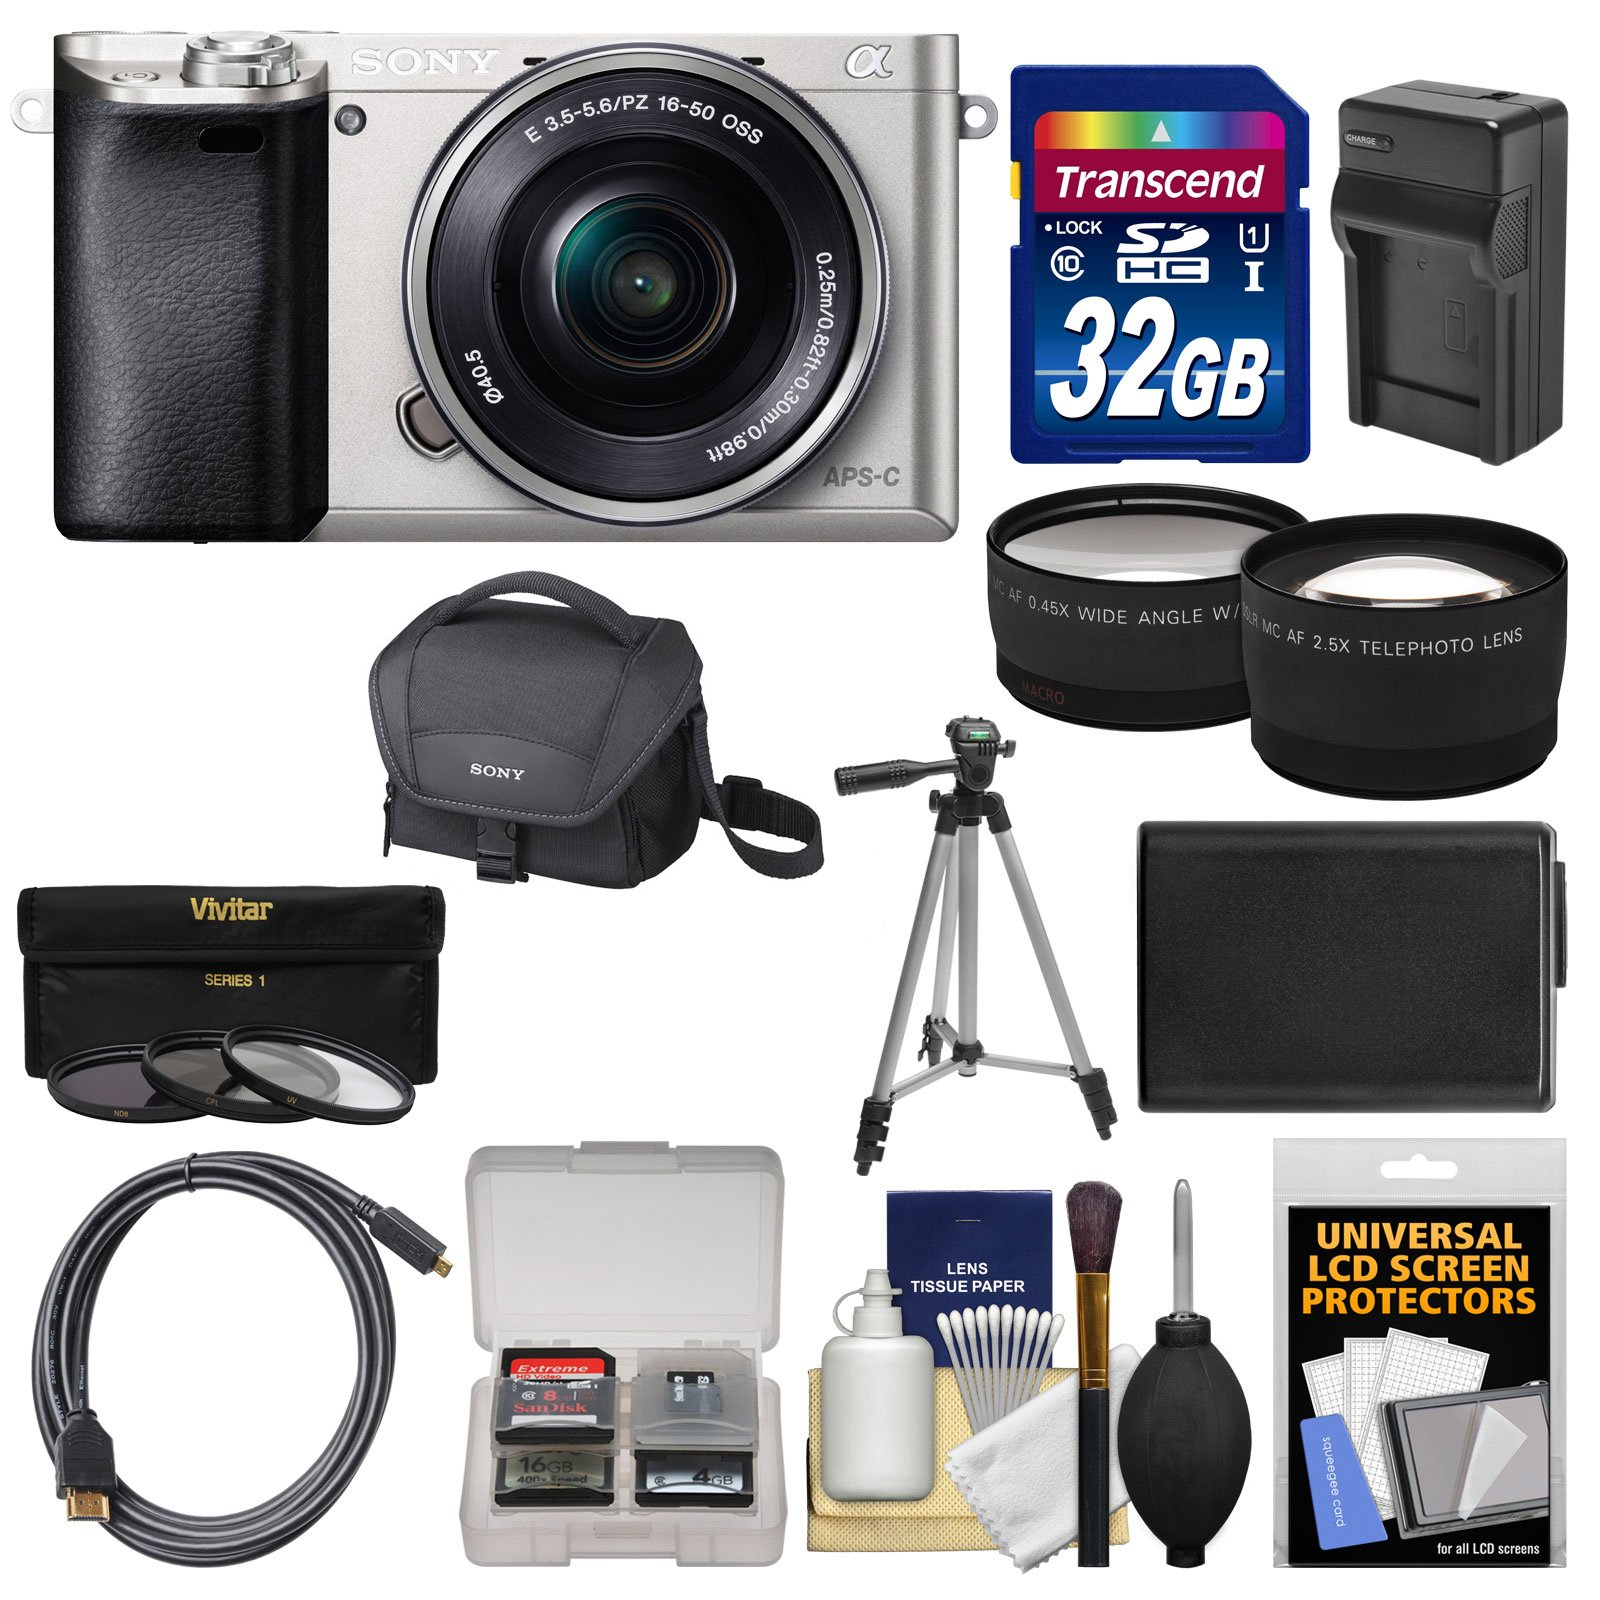 Sony Alpha A6000 Wi-Fi Digital Camera & 16-50mm Lens (Silver) with 32GB Card + Case + Battery/Charger + Tripod + Tele/Wide Lens Kit by Sony